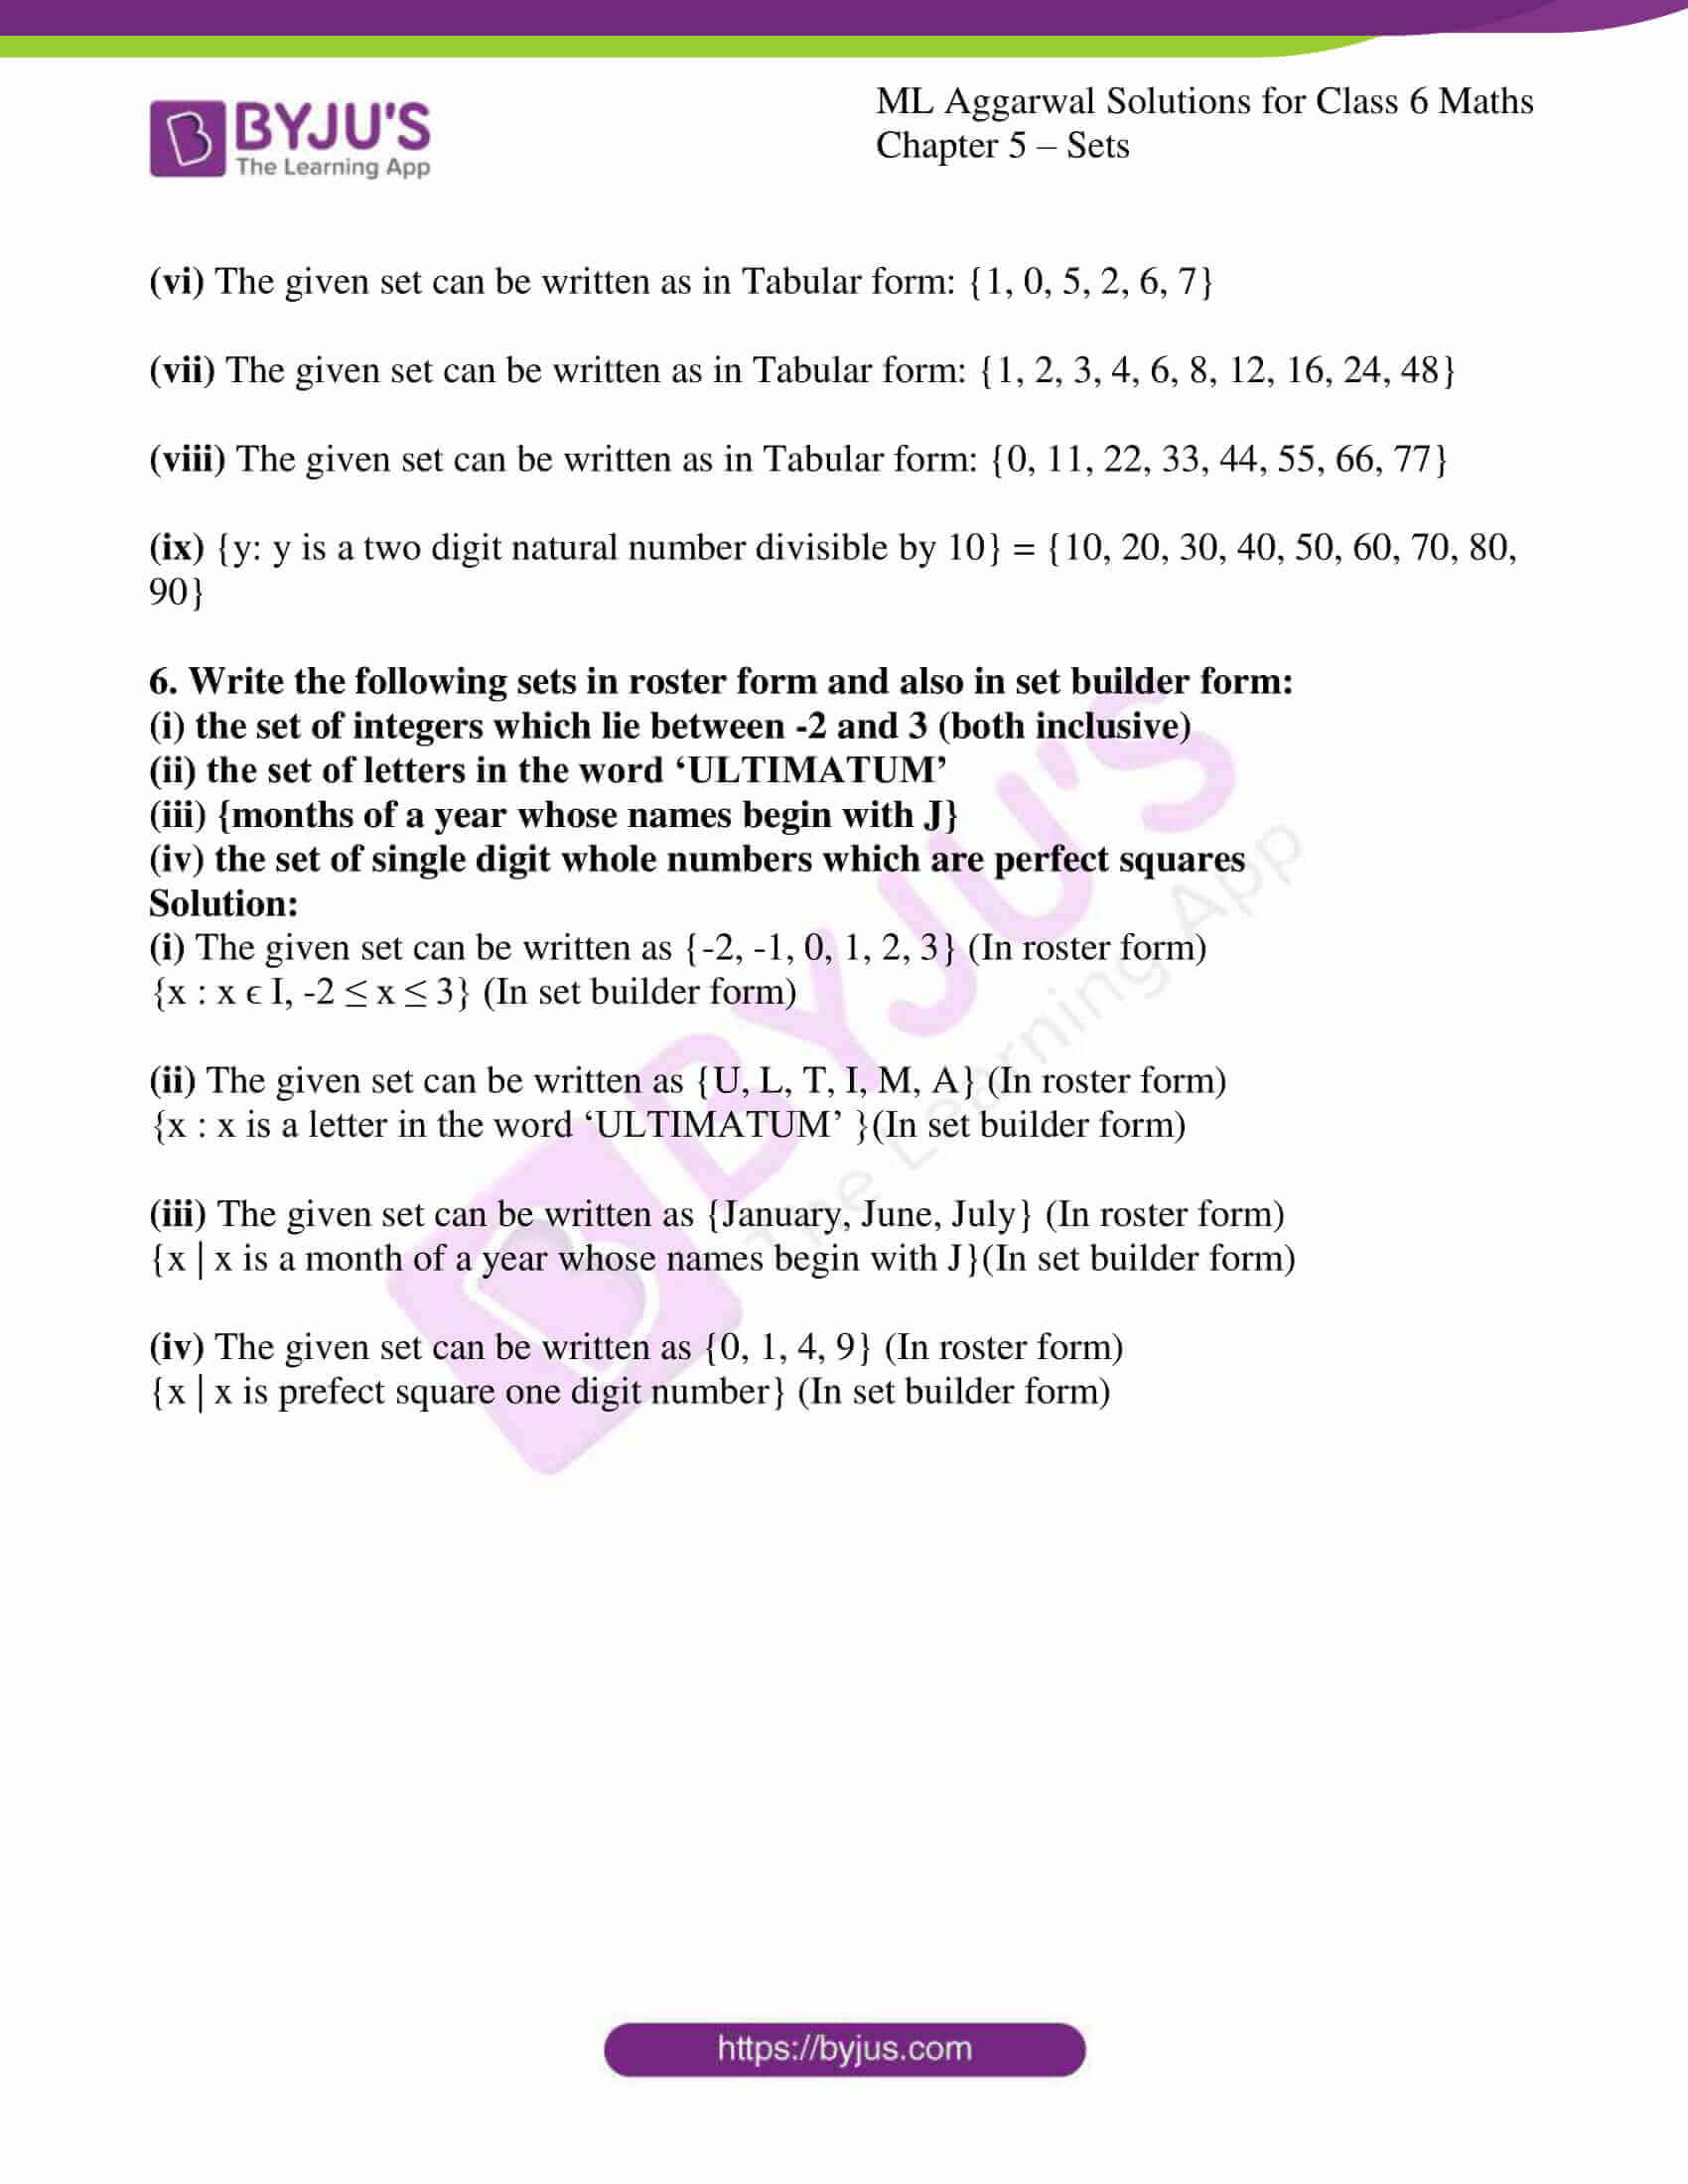 ml aggarwal solutions for class 6 maths chapter 5 5